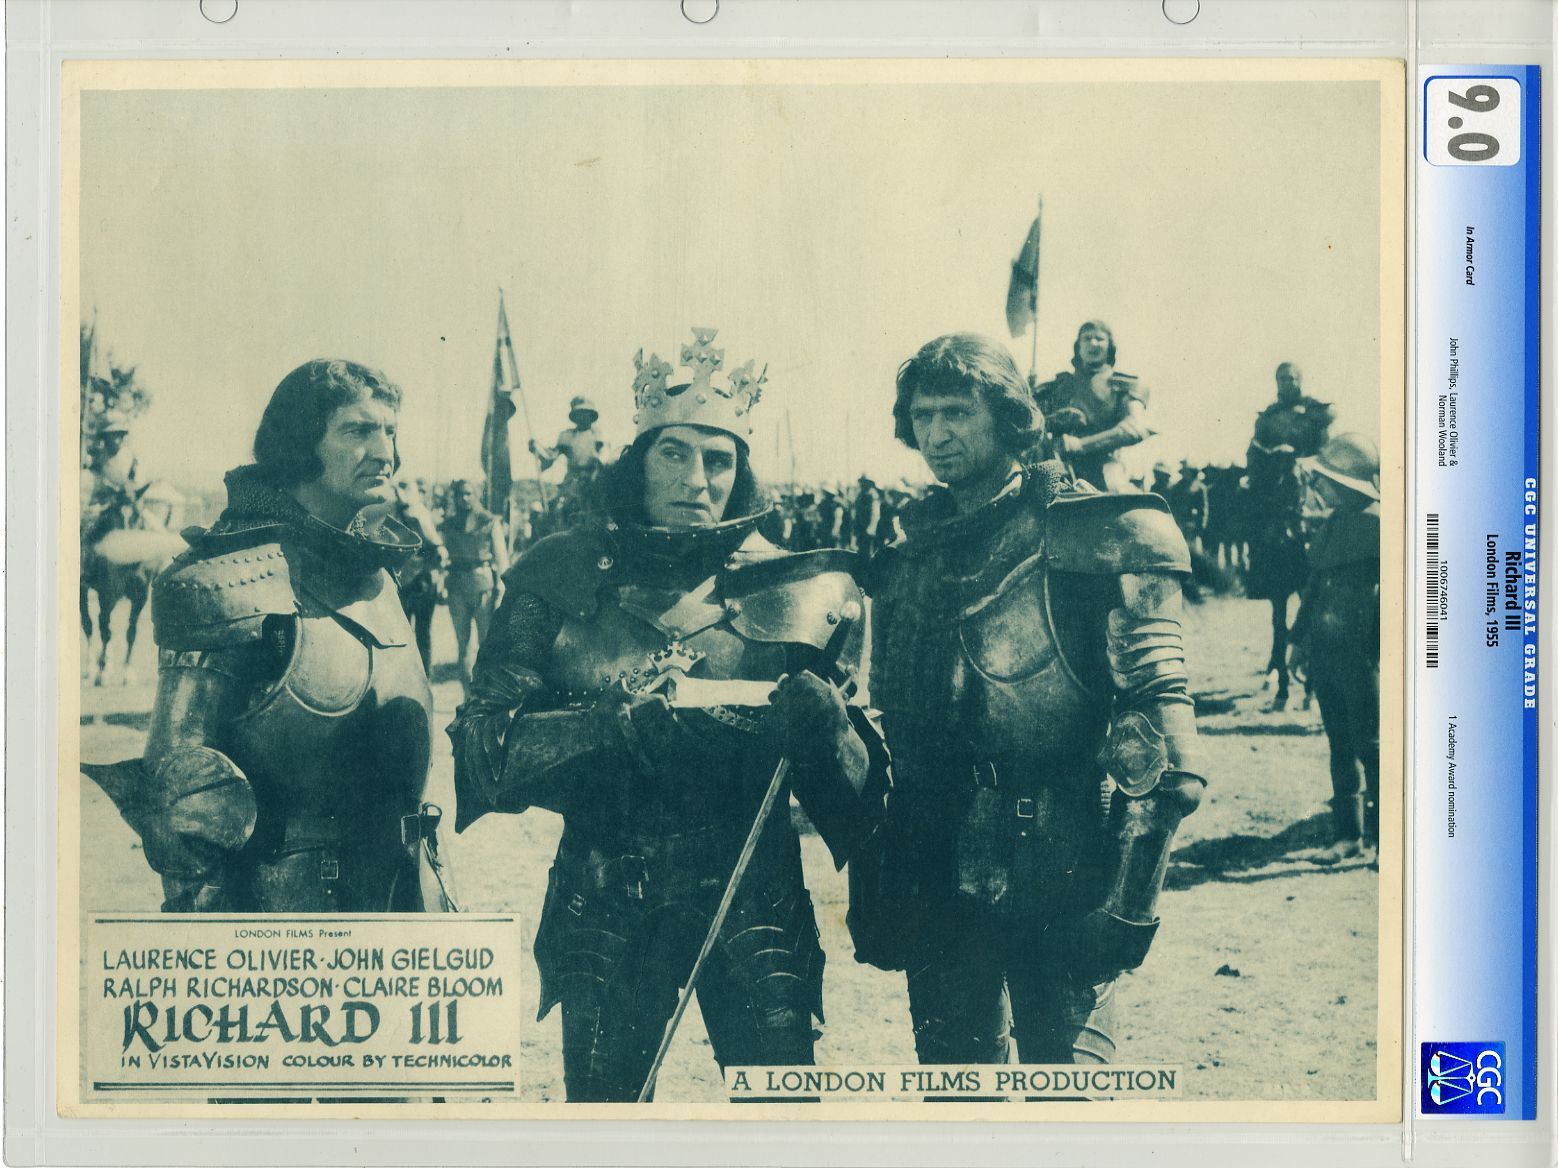 Lobby card of Laurence Olivier in armor and crown in Richard III movieloversreviews.filminspector.com